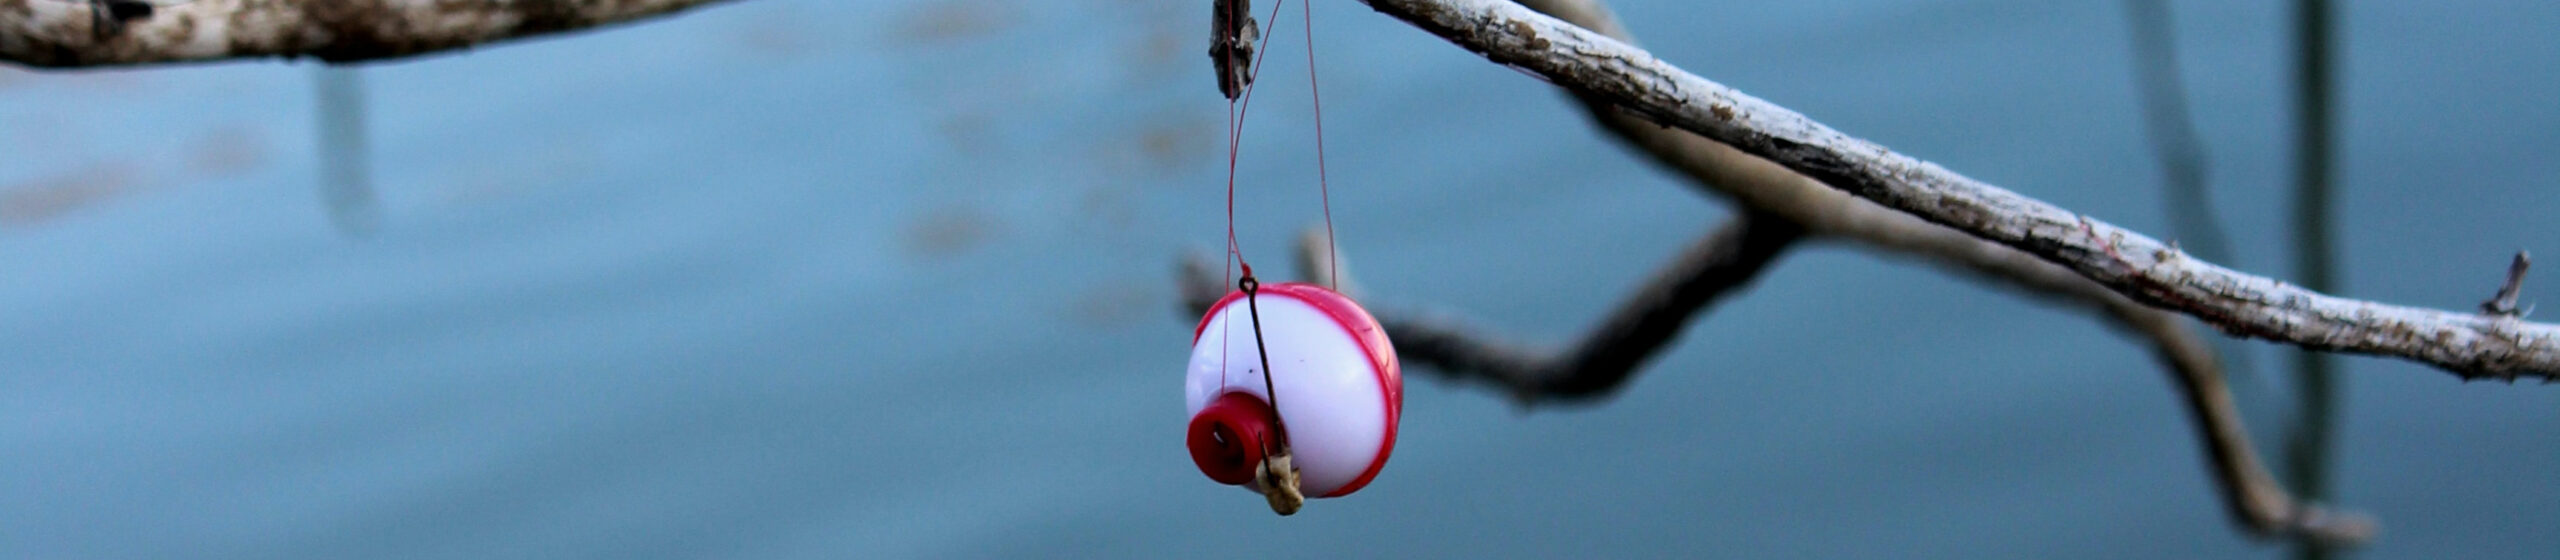 Fishing Lure Hanging on Branch